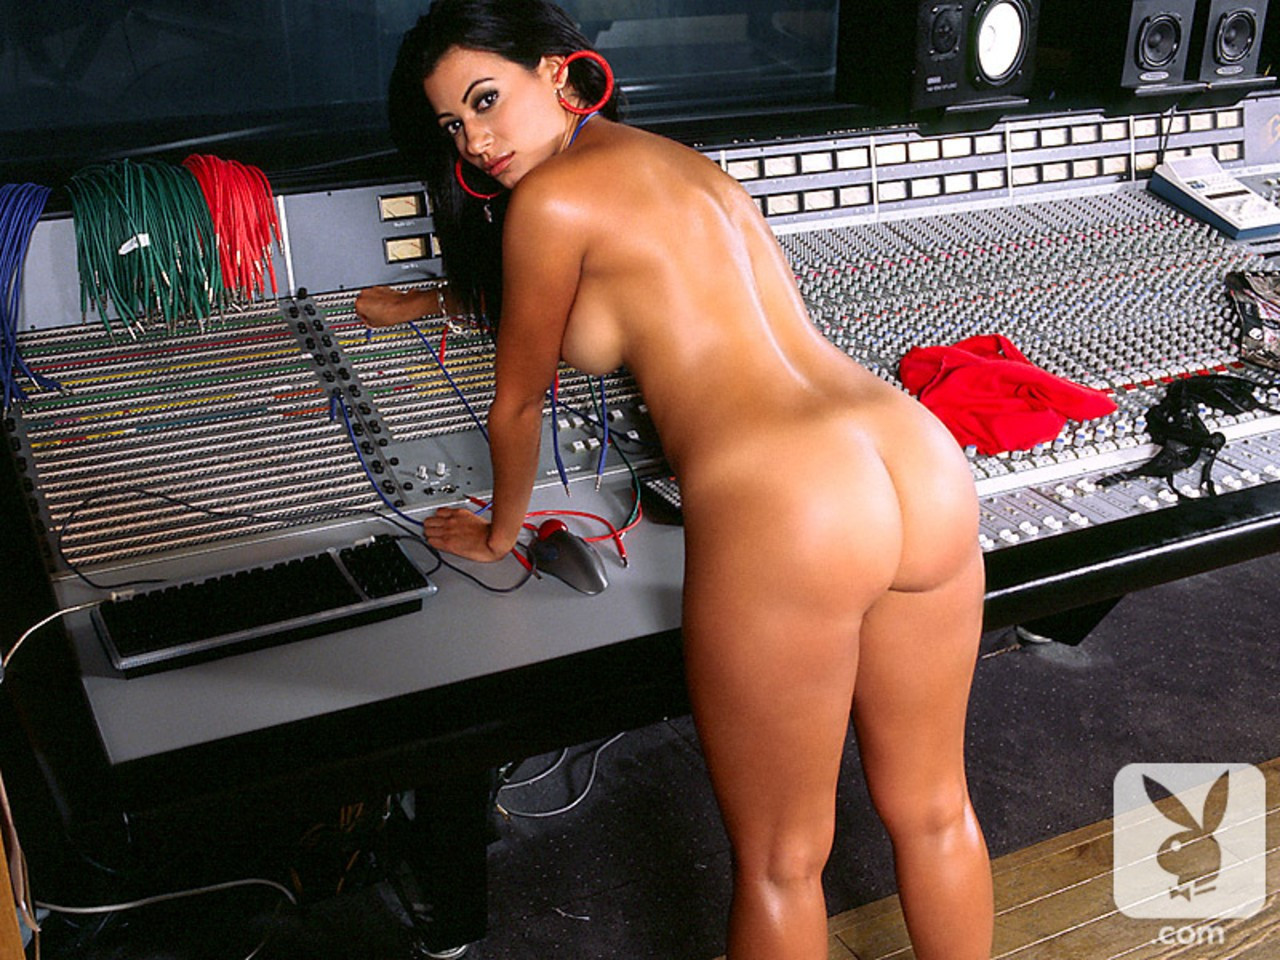 Stunning hottie in fishnets Alejandra Lares getting naked in the music studio